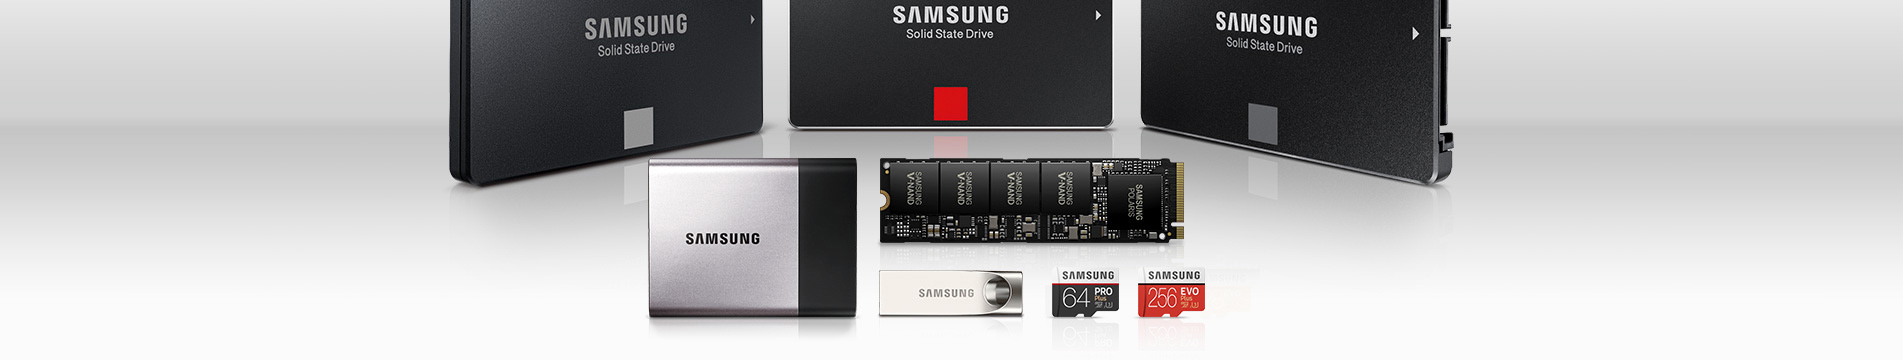 Samsung Memory Product Claim